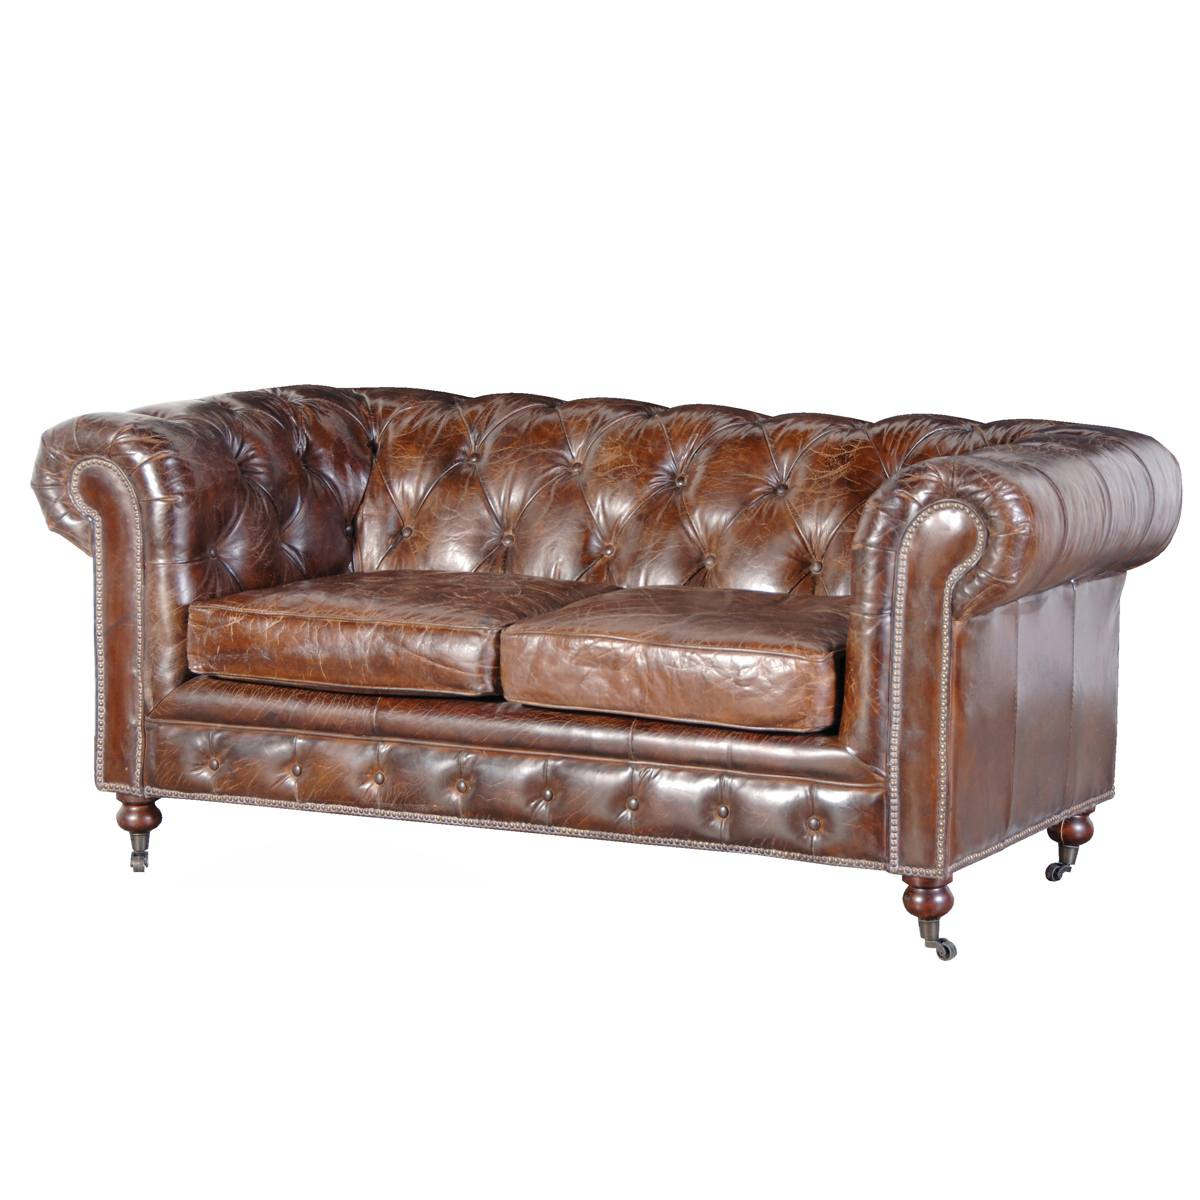 Vintage Leather Sofa 23